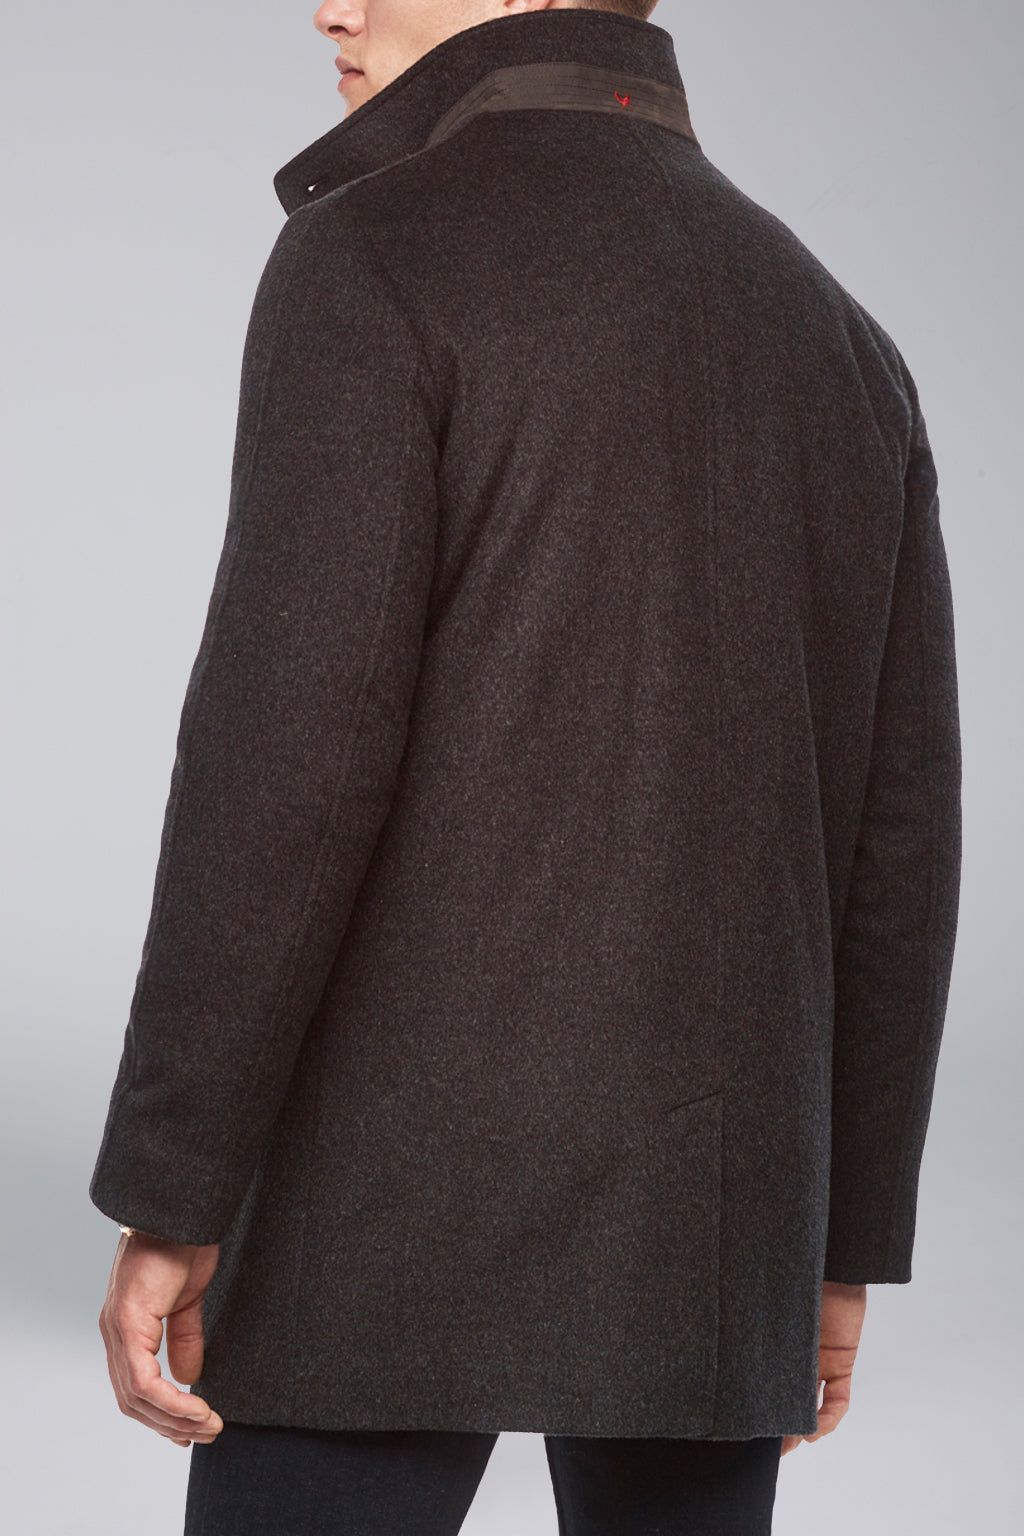 Charcoal Mont-Royal Versatile Cashmere Wool Overcoat